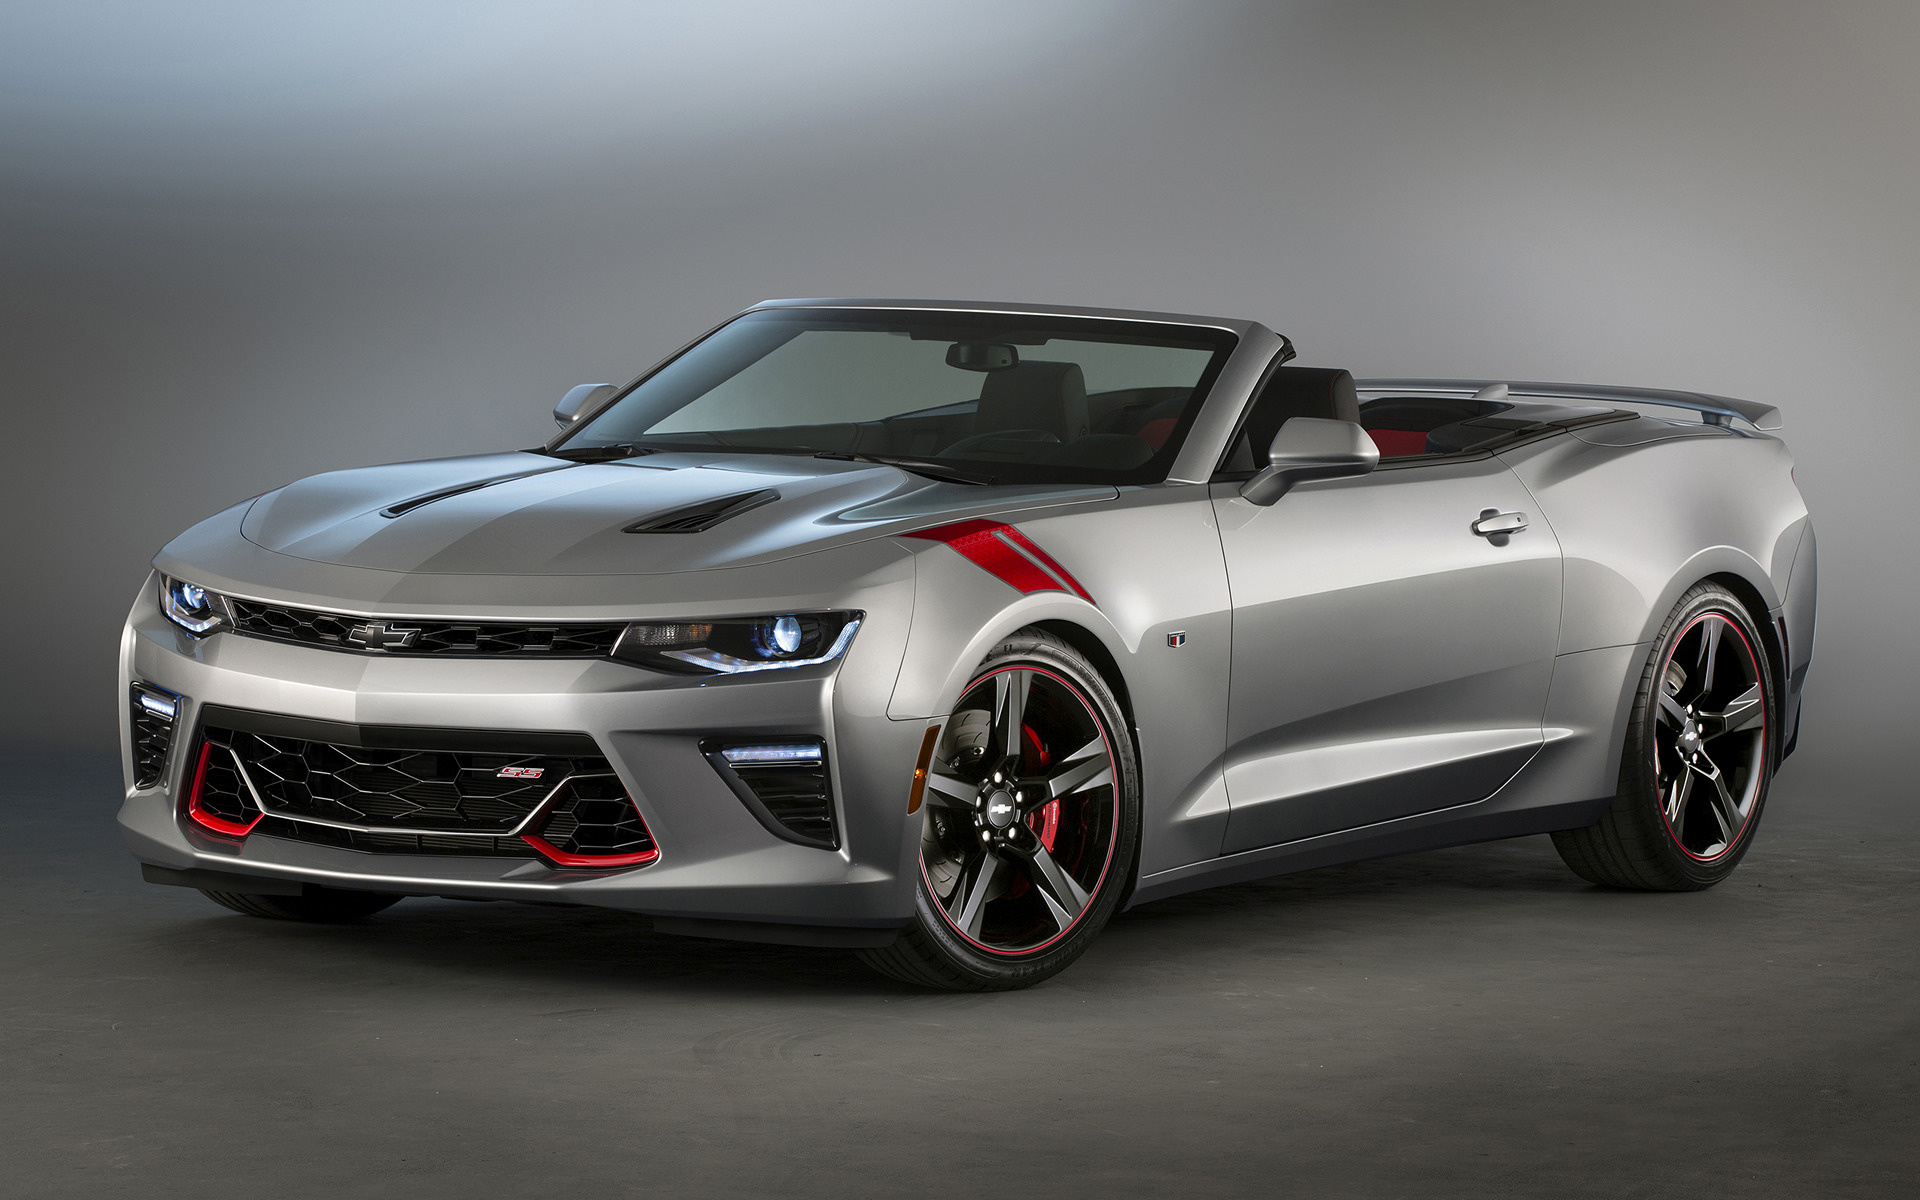 2015 Chevrolet Camaro Ss Convertible Red Accent Concept Hintergrundbilder Und Wallpaper In Hd Car Pixel